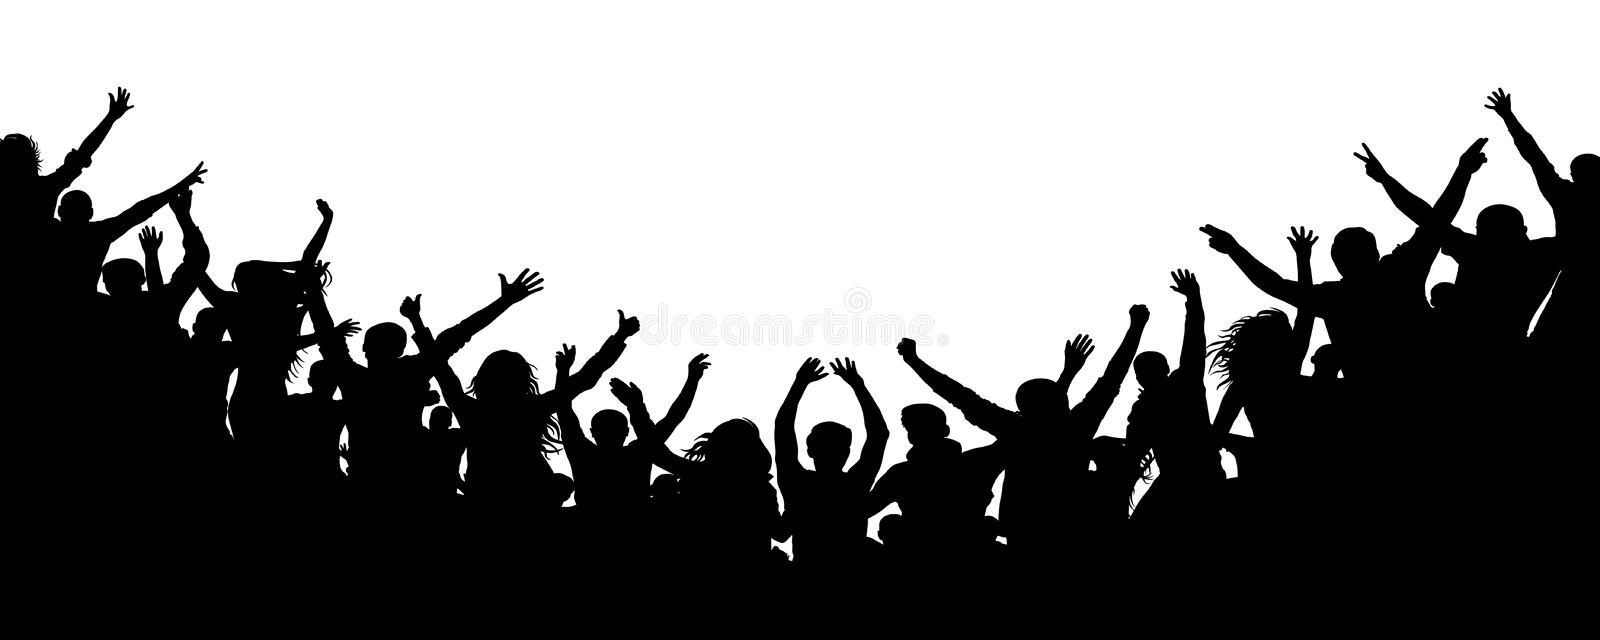 Cheerful people crowd applauding, silhouette. Party, applause. Fans dance concert, disco vector illustration